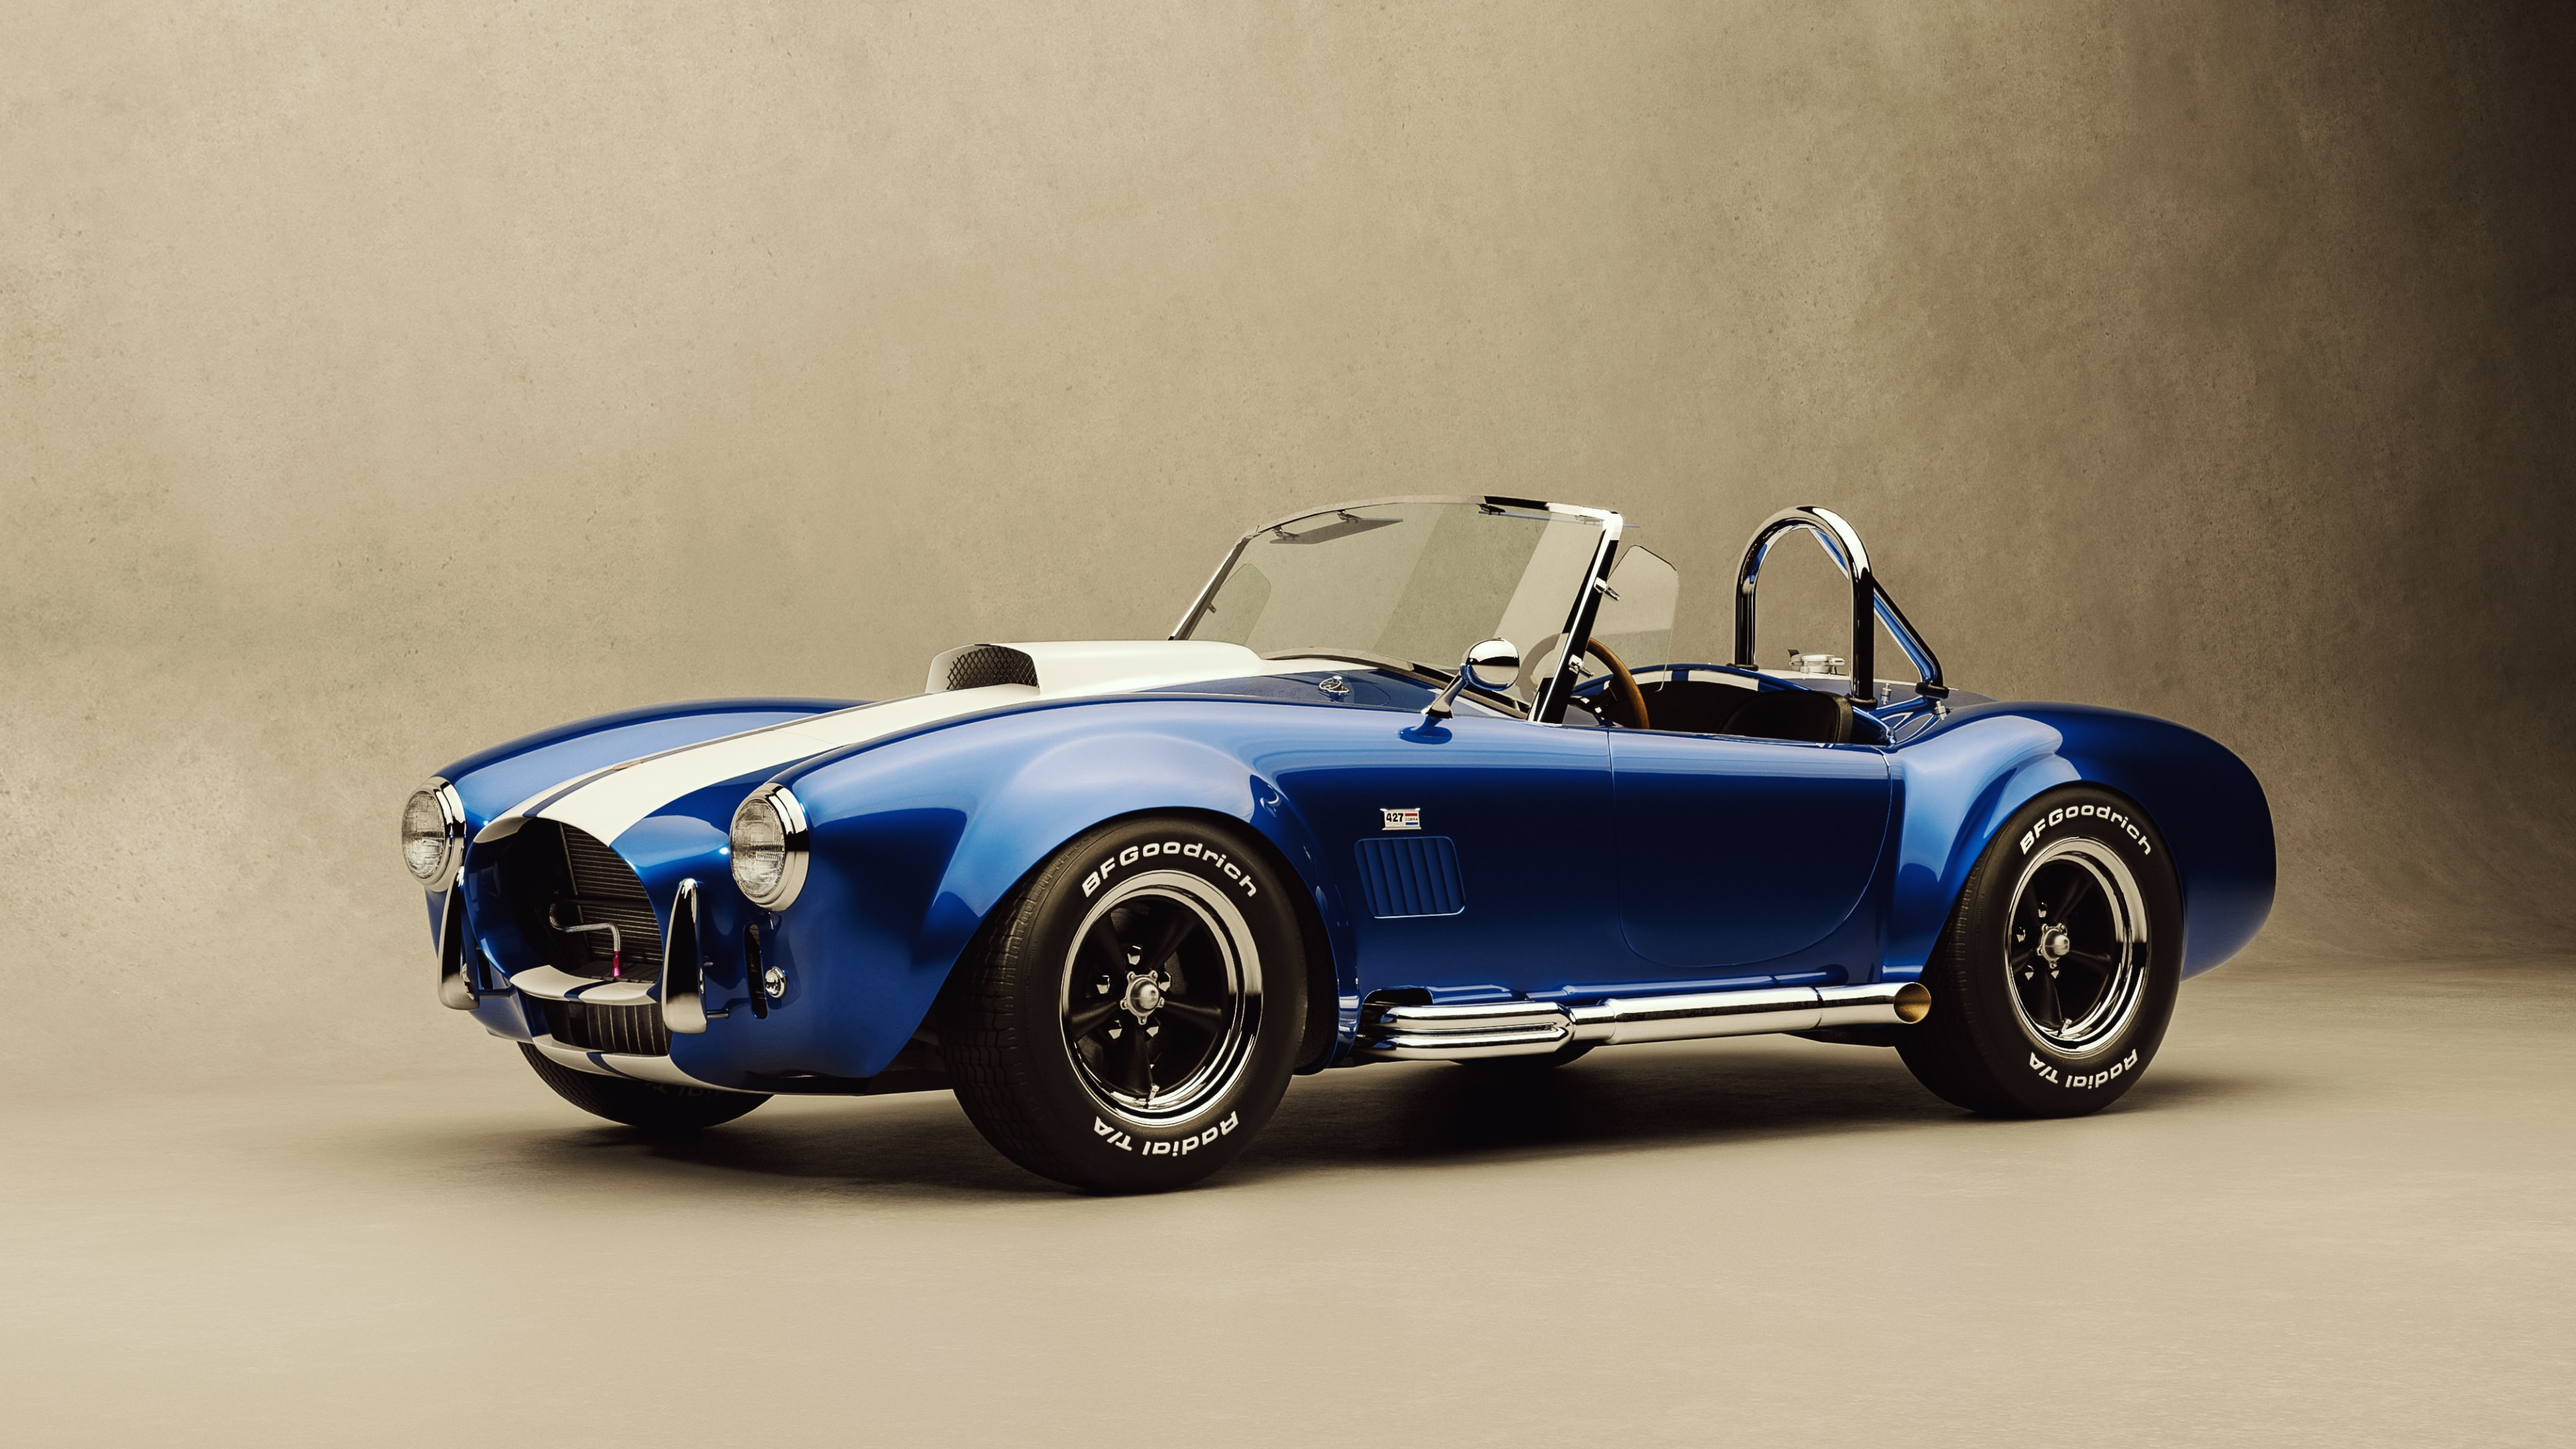 Car Vintage Ford Shelby Cobra 427 HD Wallpapers 4K Wallpapers 3840x2160